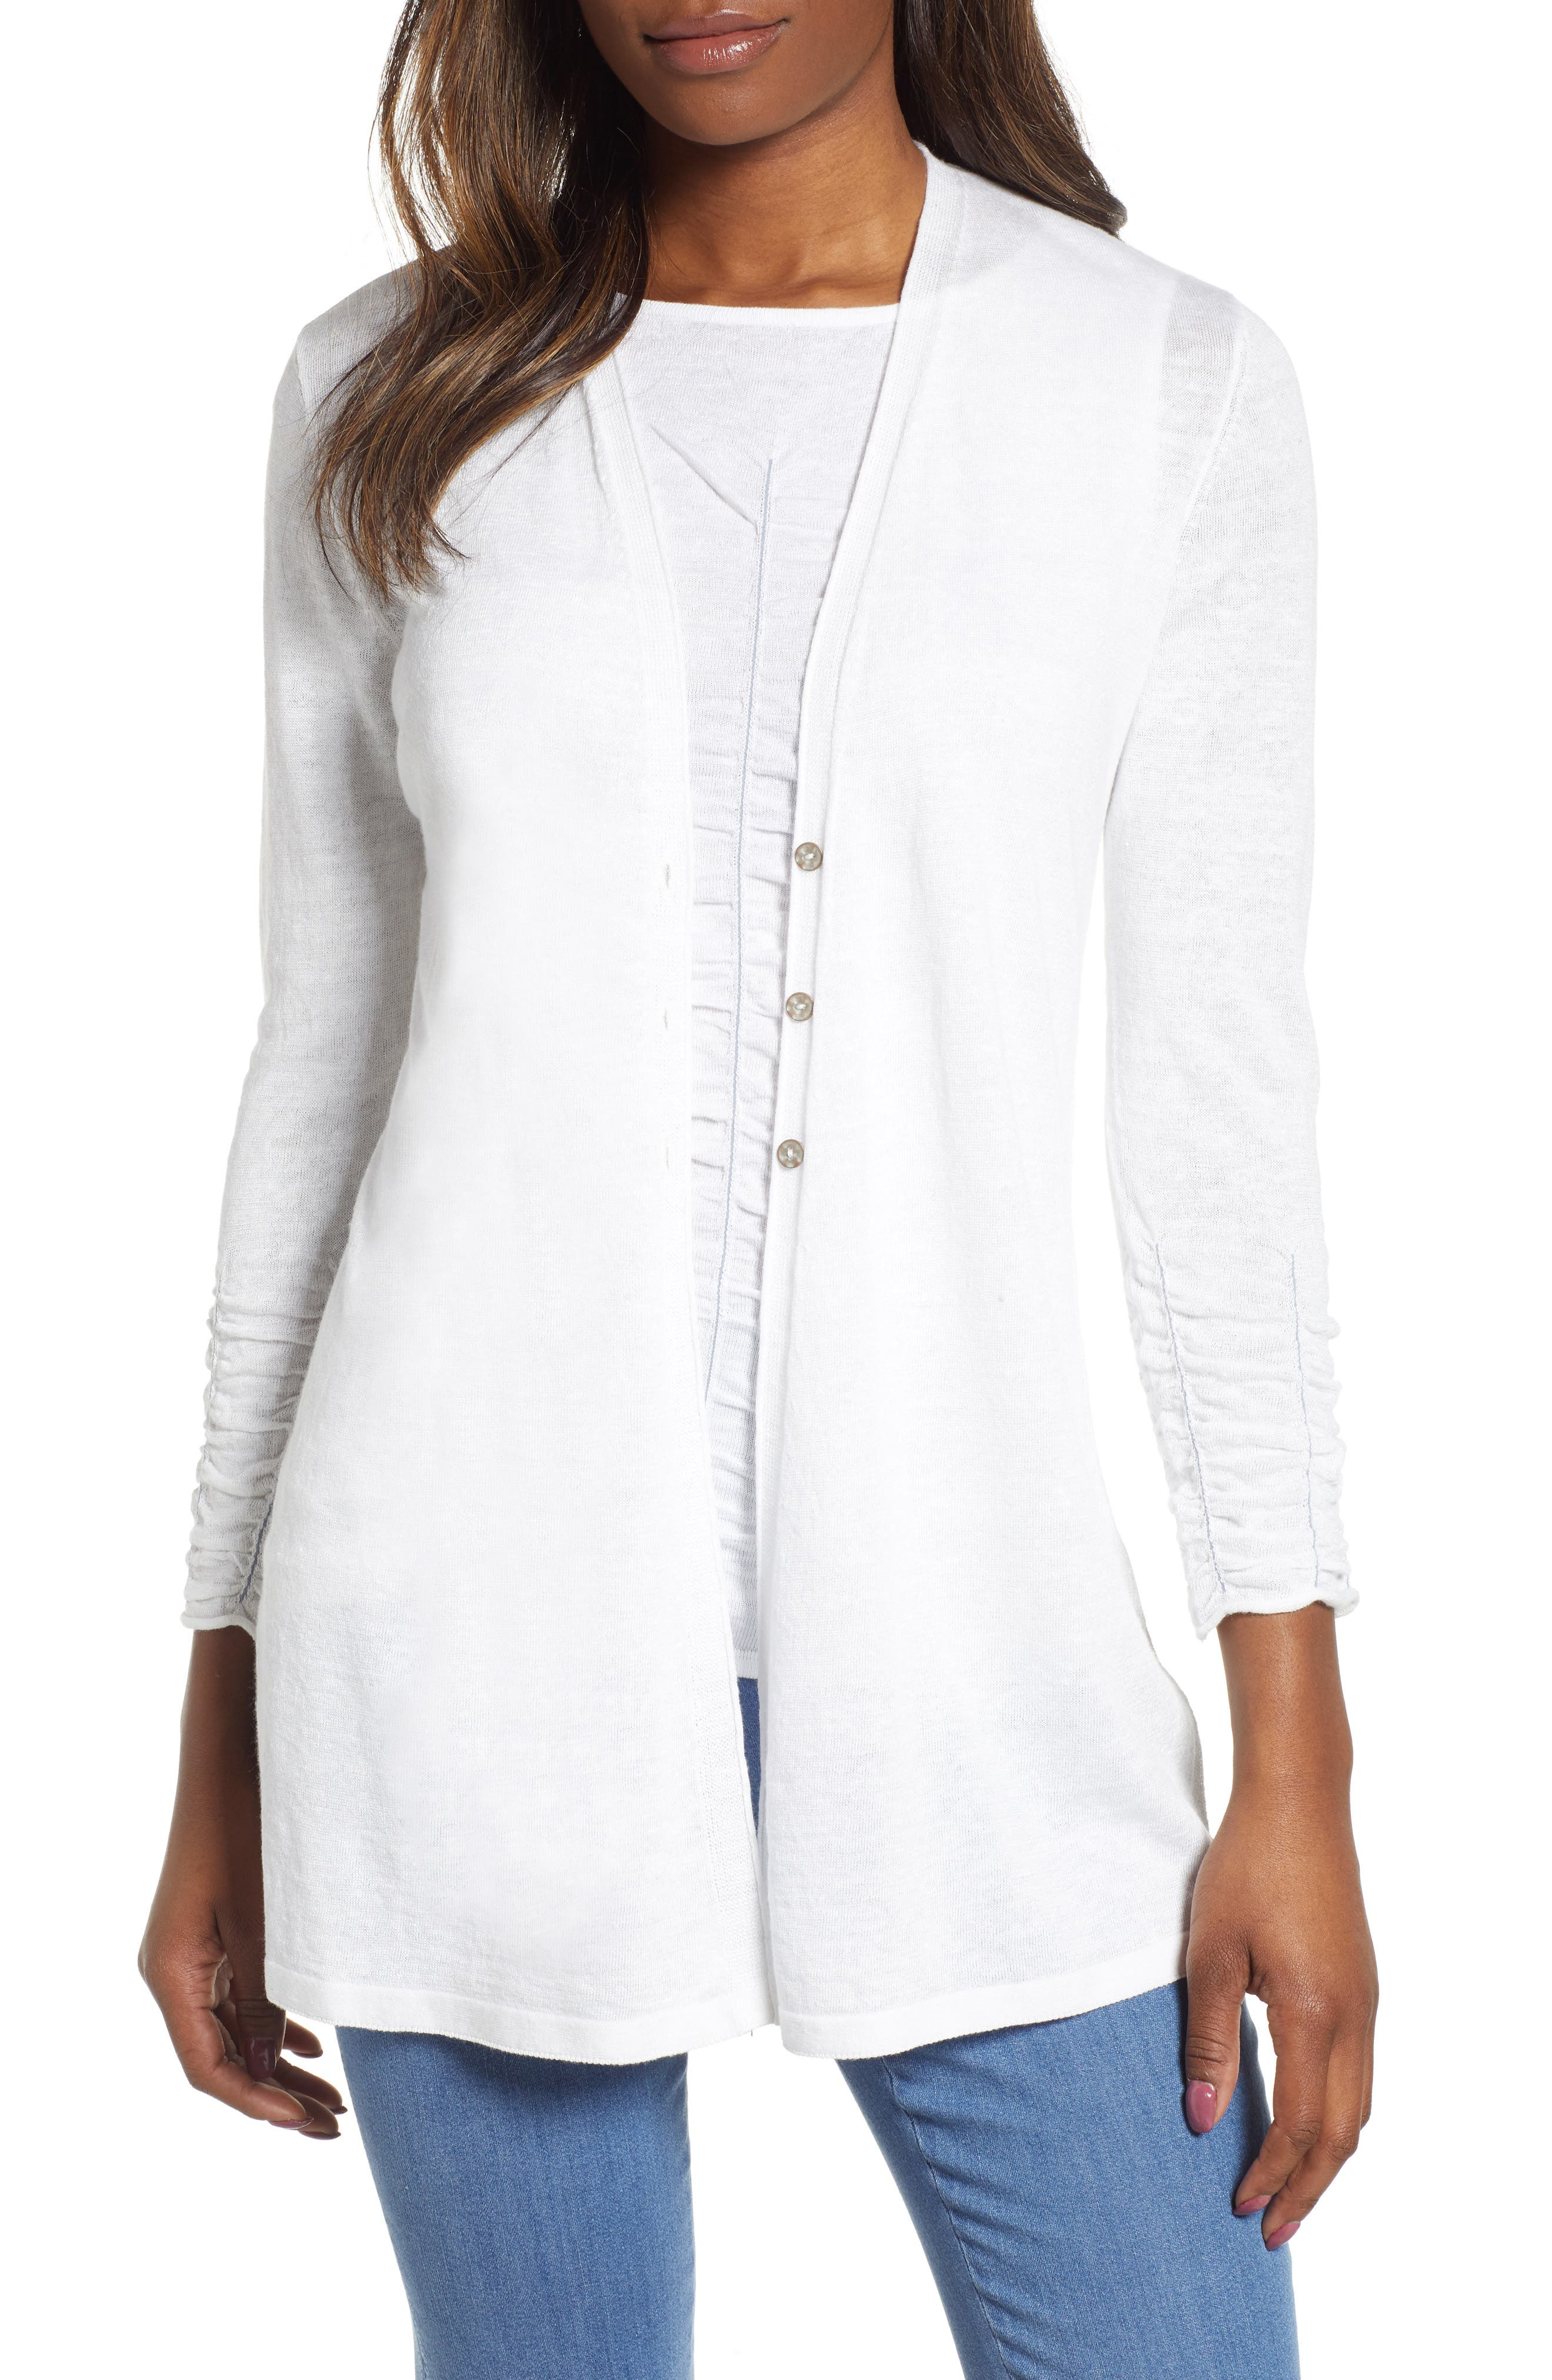 NIC+ZOE, Ruched Sleeve Cardigan, Main thumbnail 1, color, PAPER WHITE